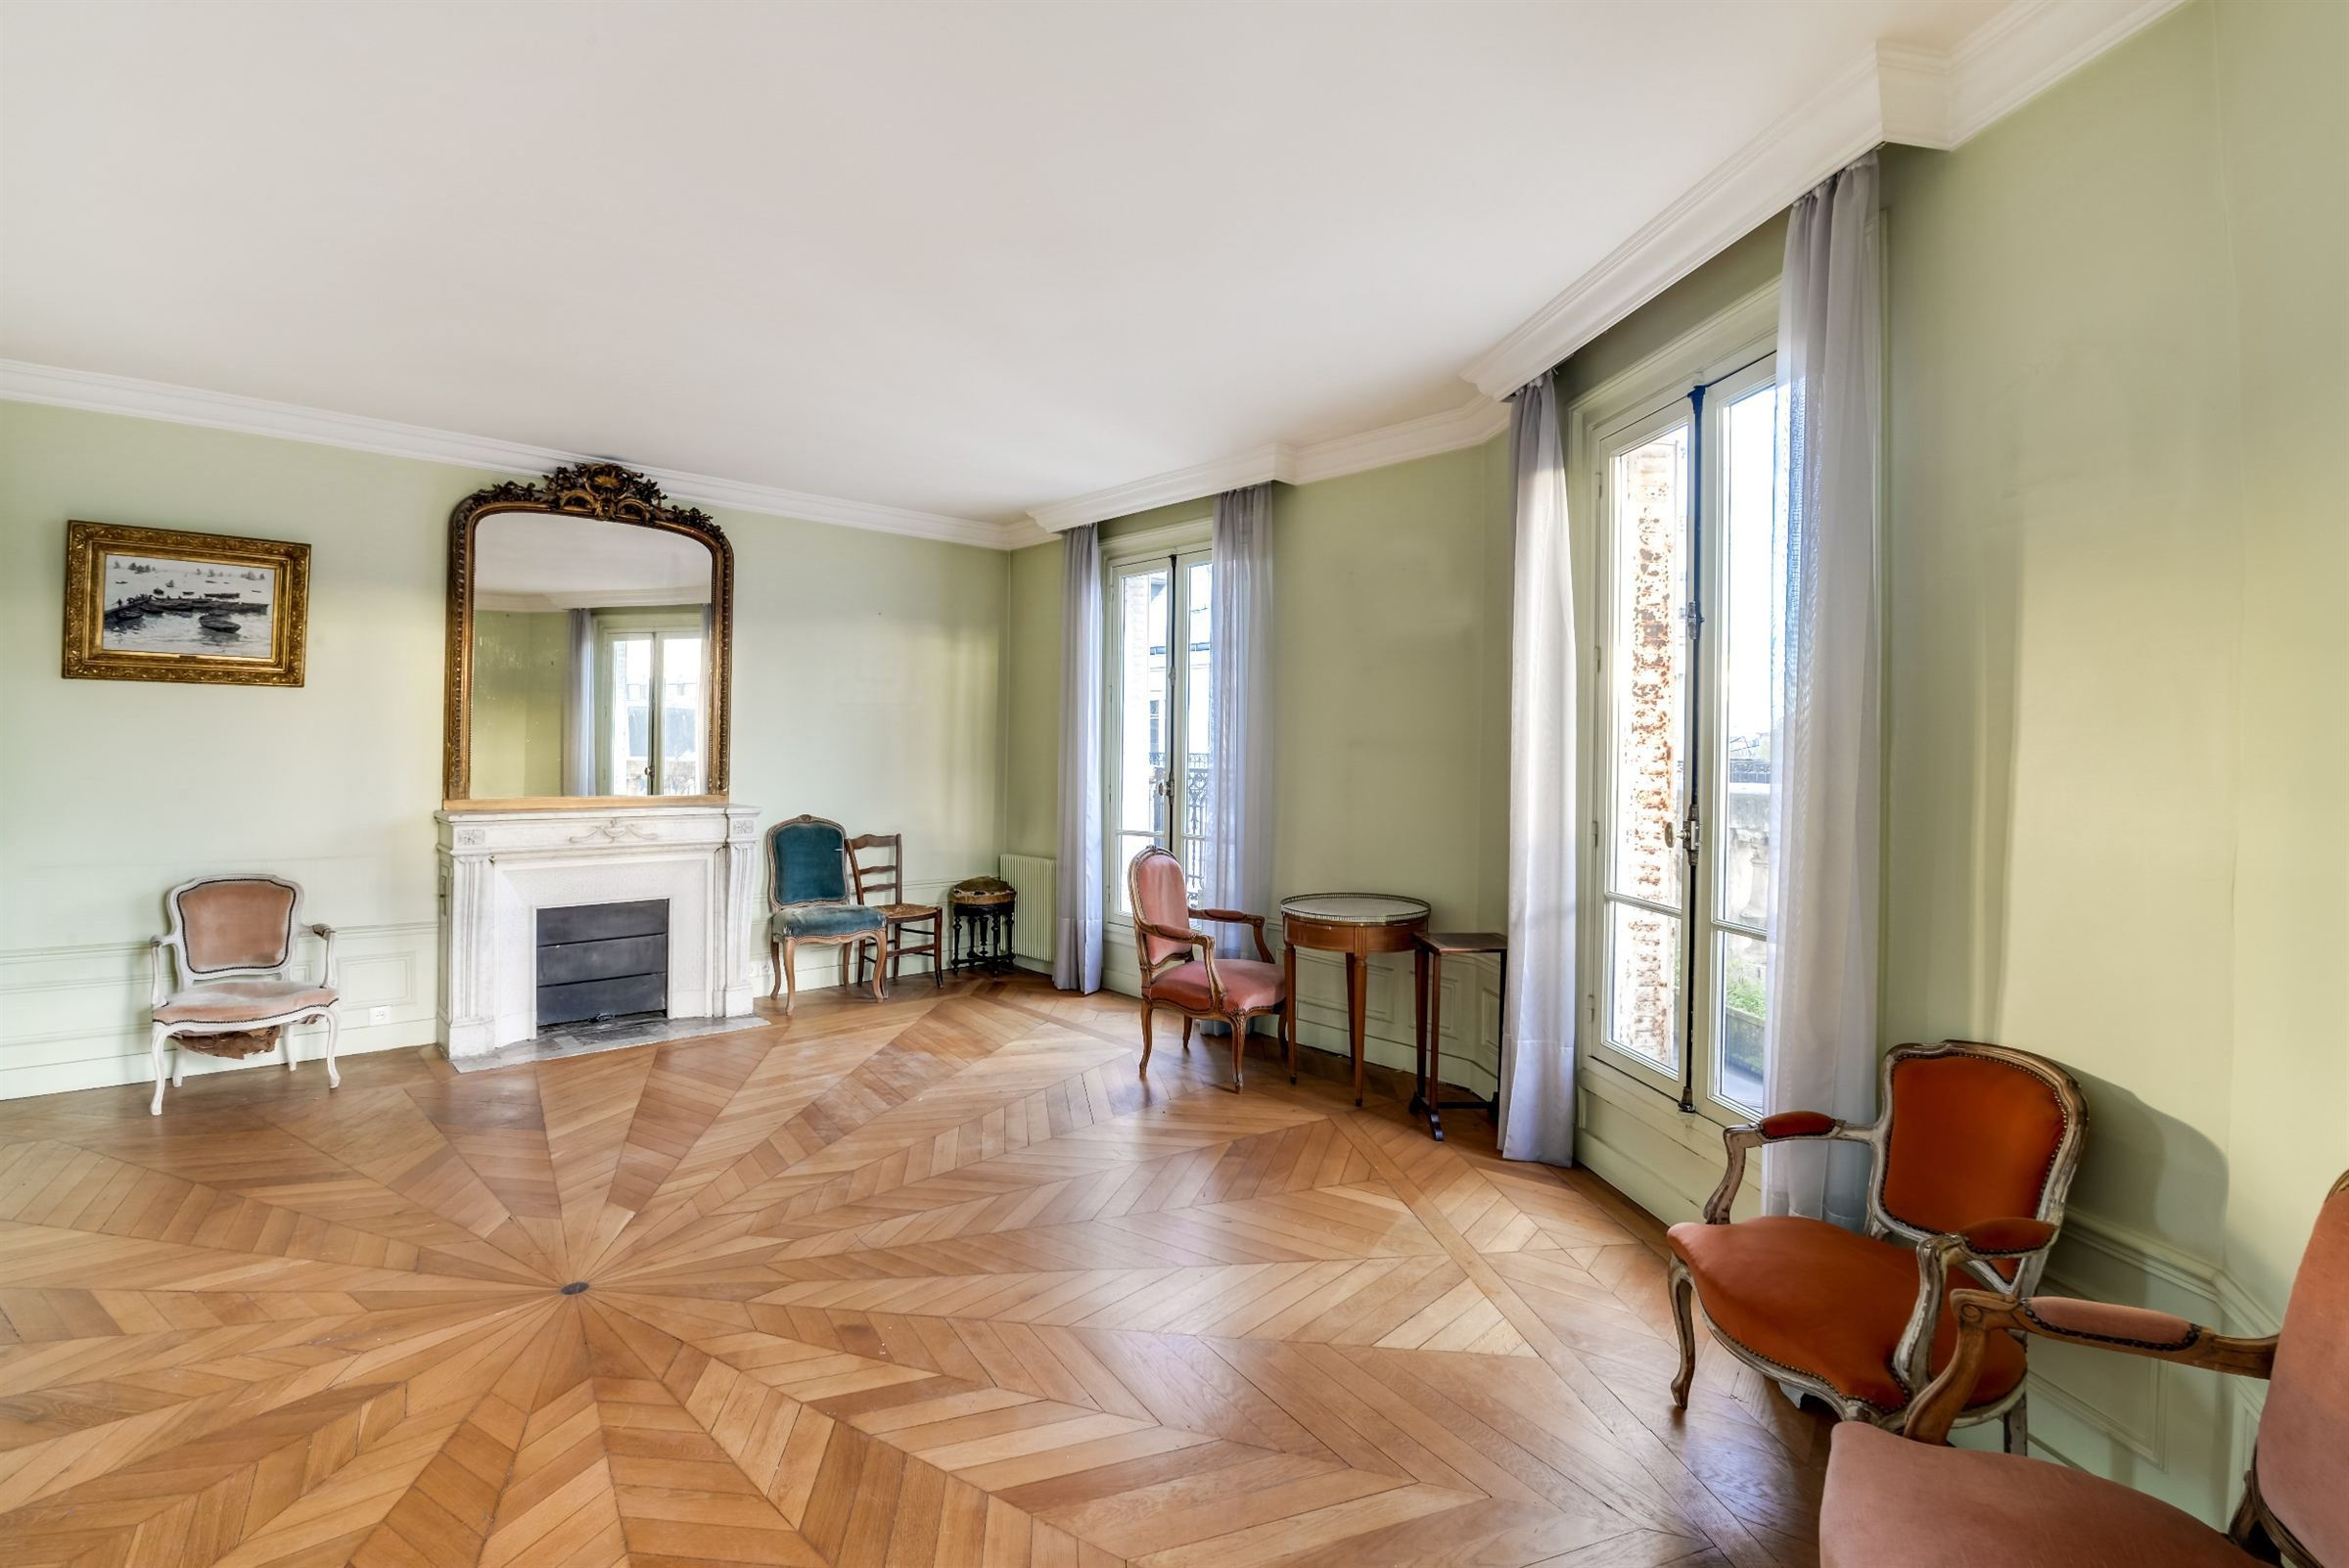 Property For Sale at Paris 6 - St-Germain. Apartment 179 sq.m.. Balcony of 25m, Notre-Dame view